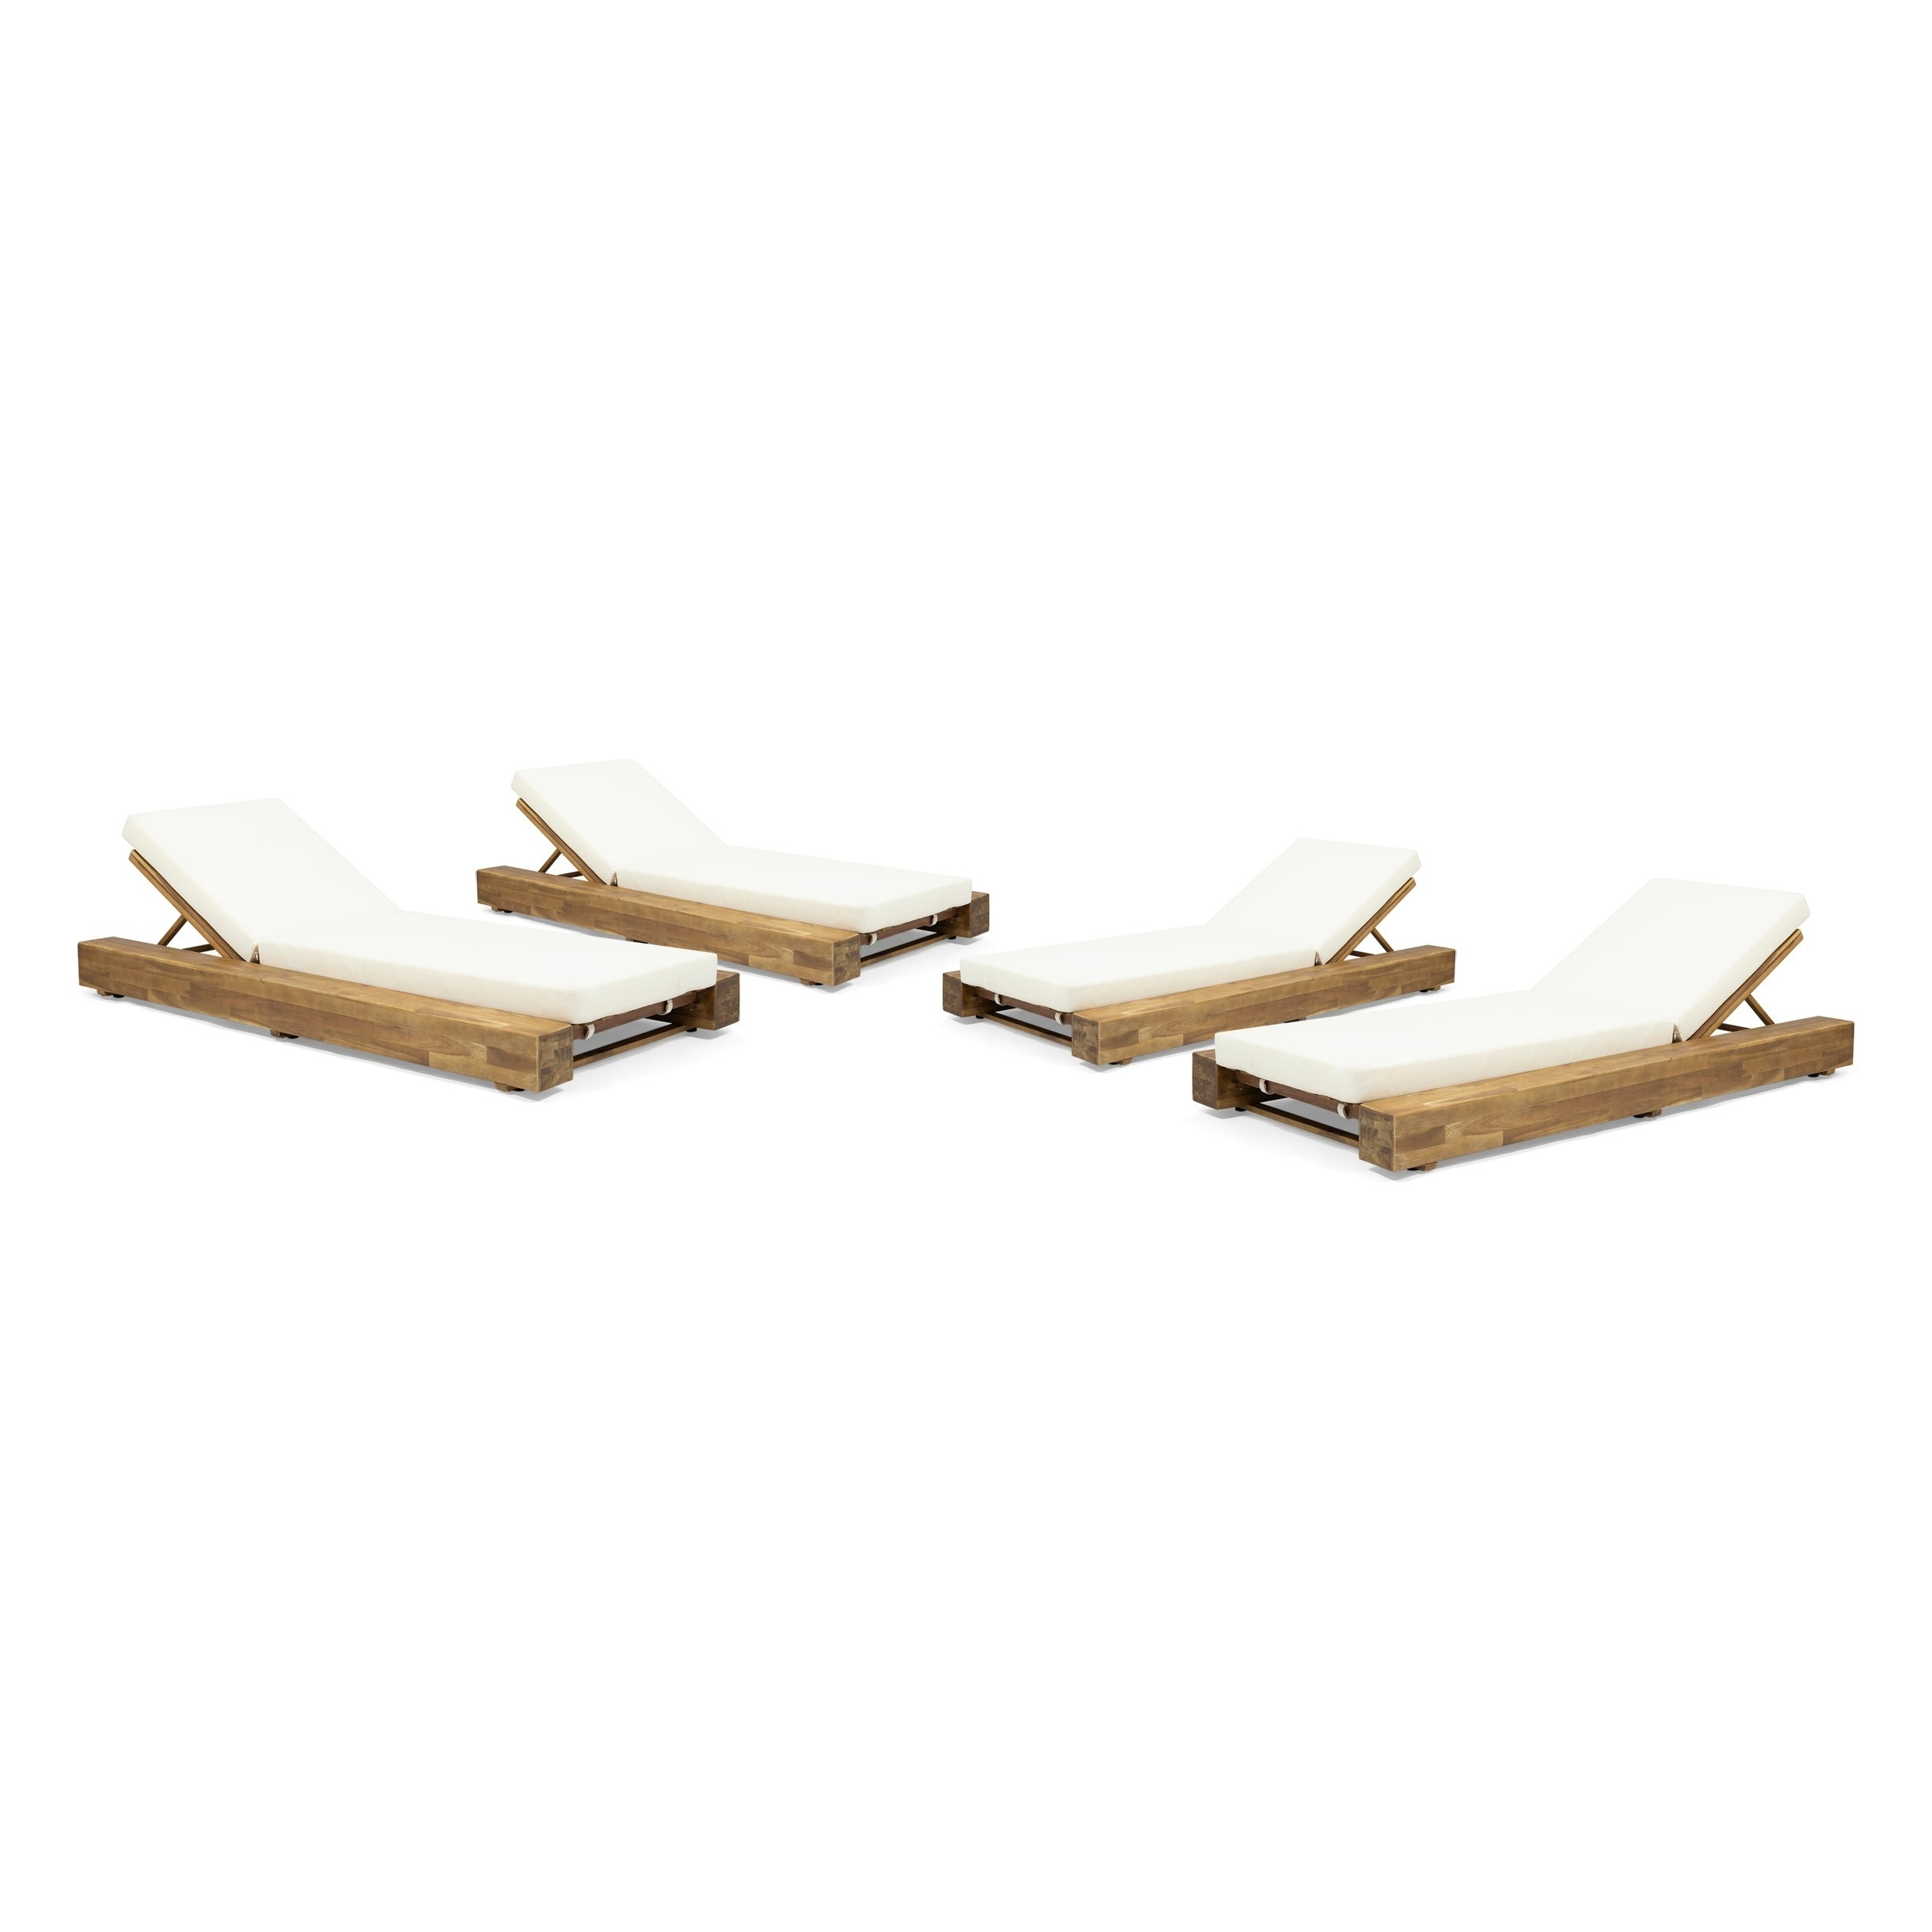 Preferred Outdoor 3 Piece Acacia Wood Chaise Lounge Sets Within Broadway Outdoor Acacia Wood Chaise Lounge And Cushion Sets (Set Of 4) Christopher Knight Home (View 20 of 25)